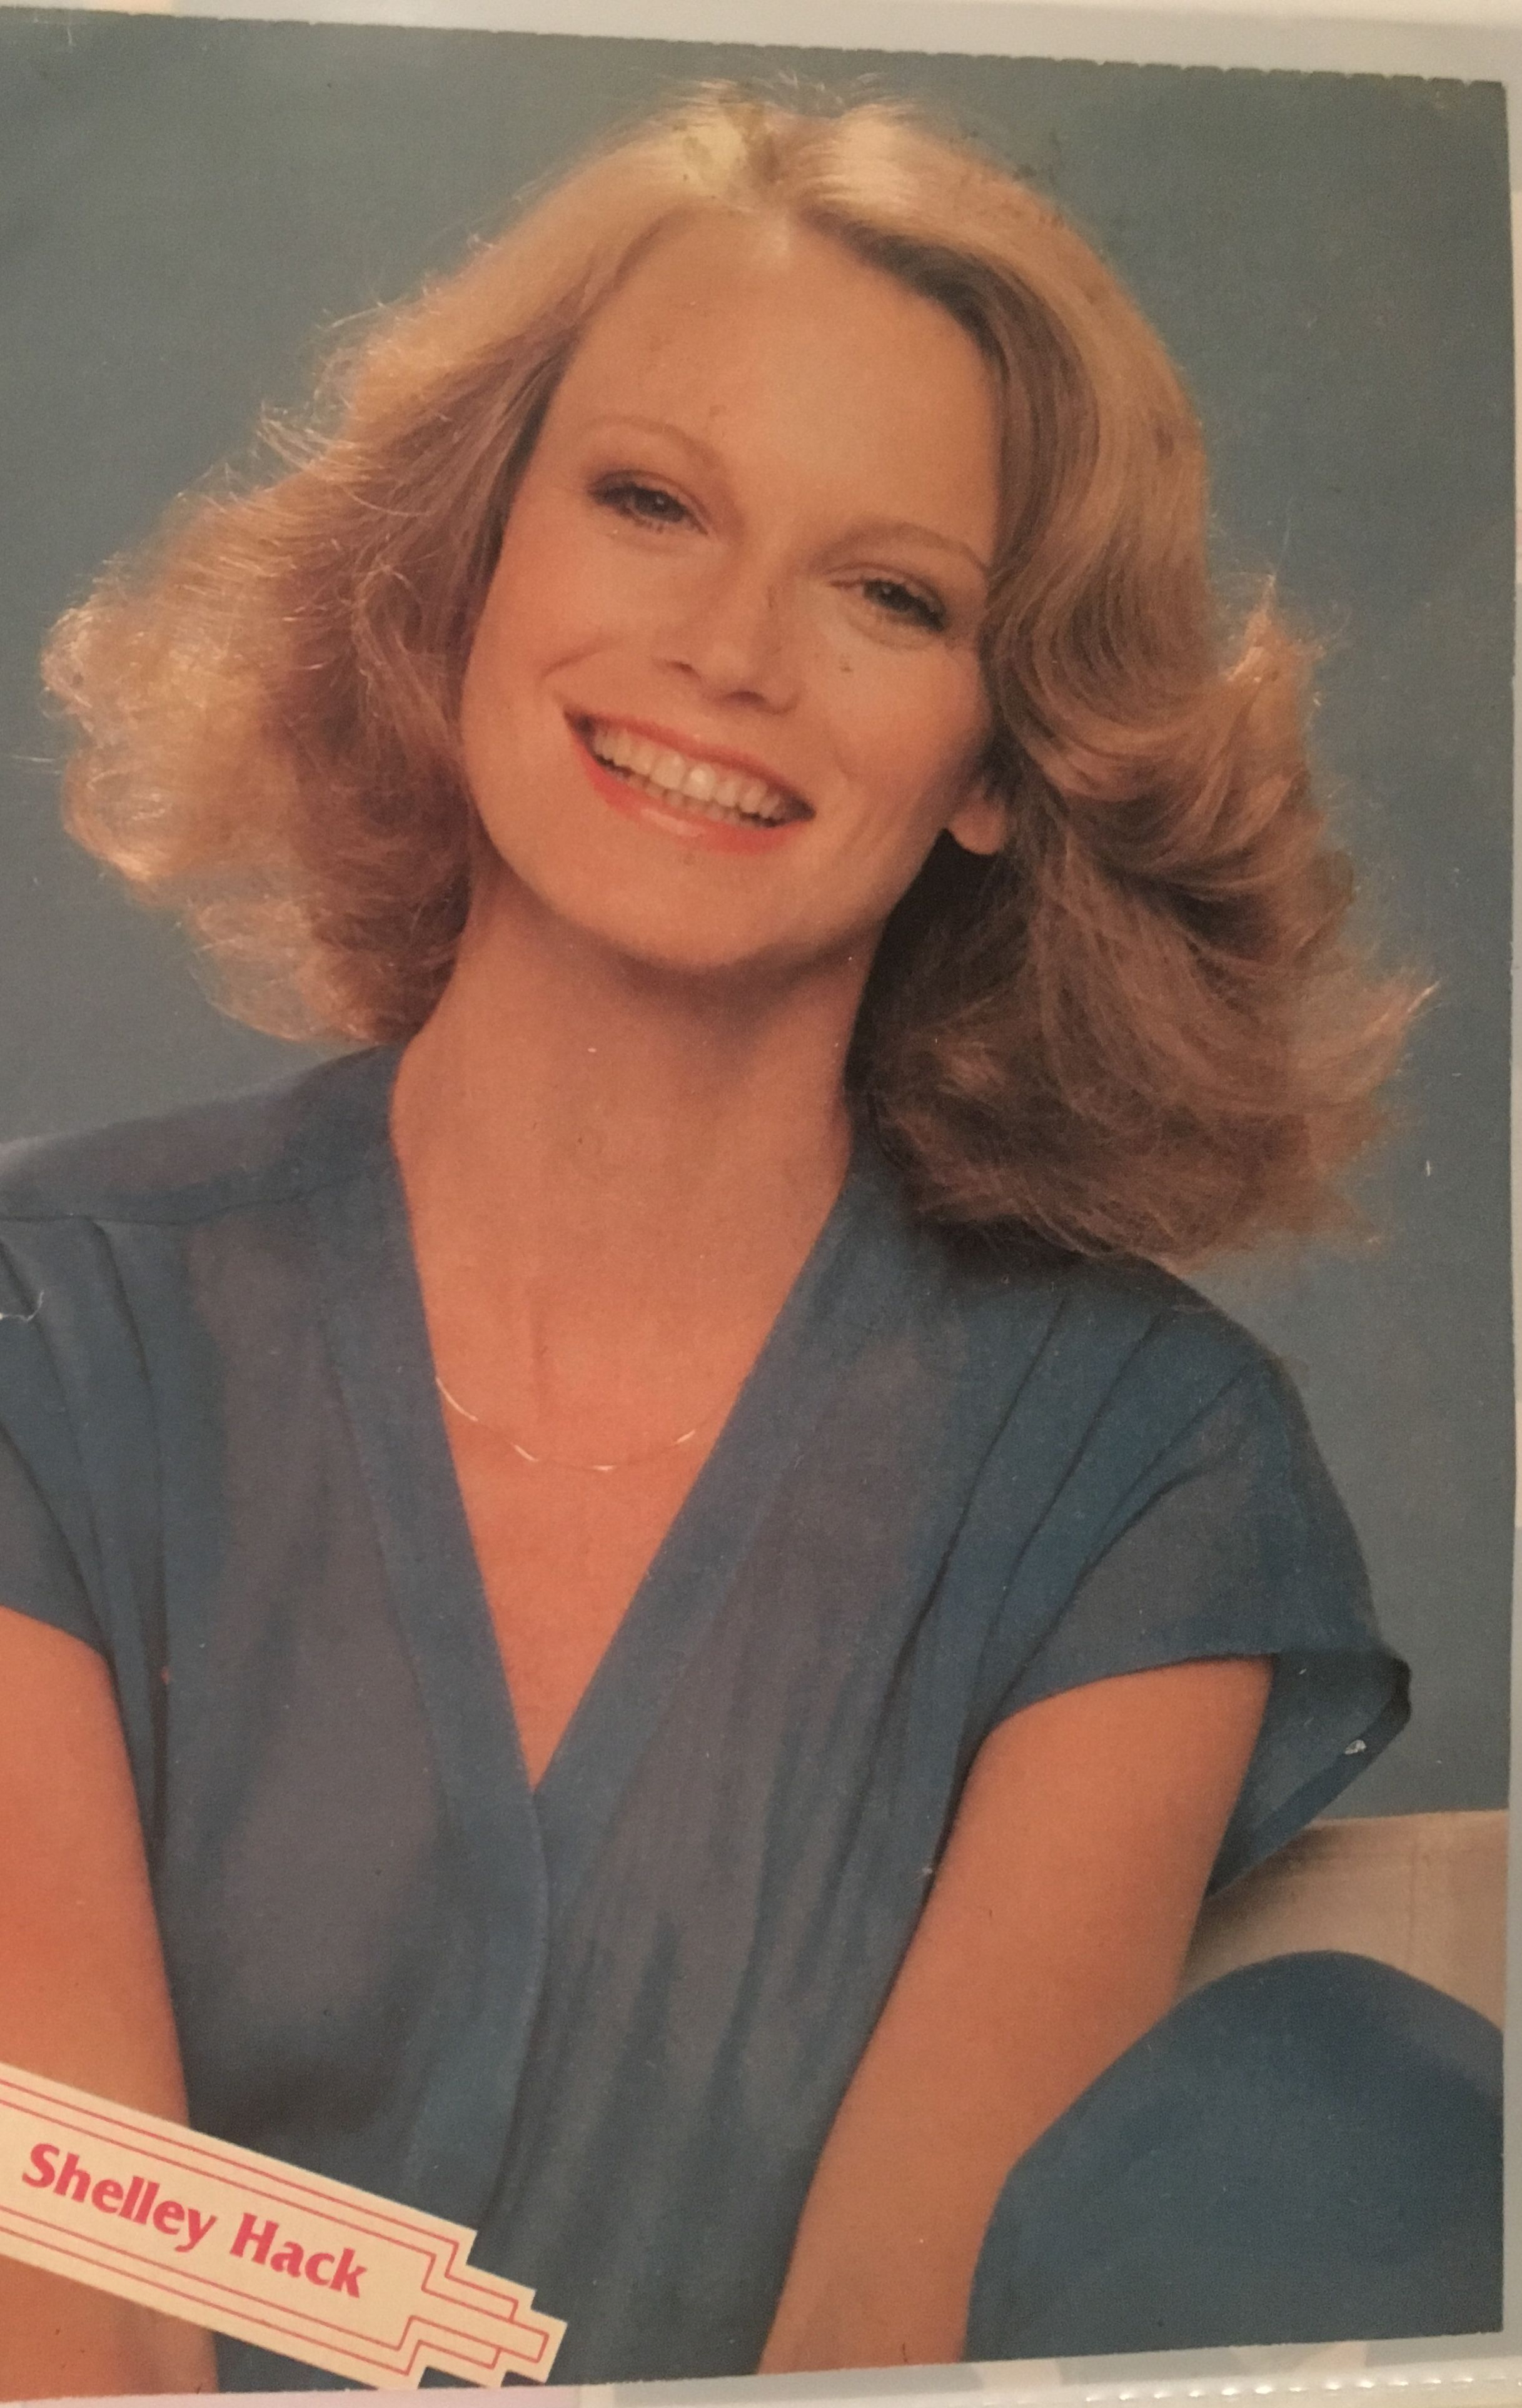 Communication on this topic: Clara Williams, shelley-hack/